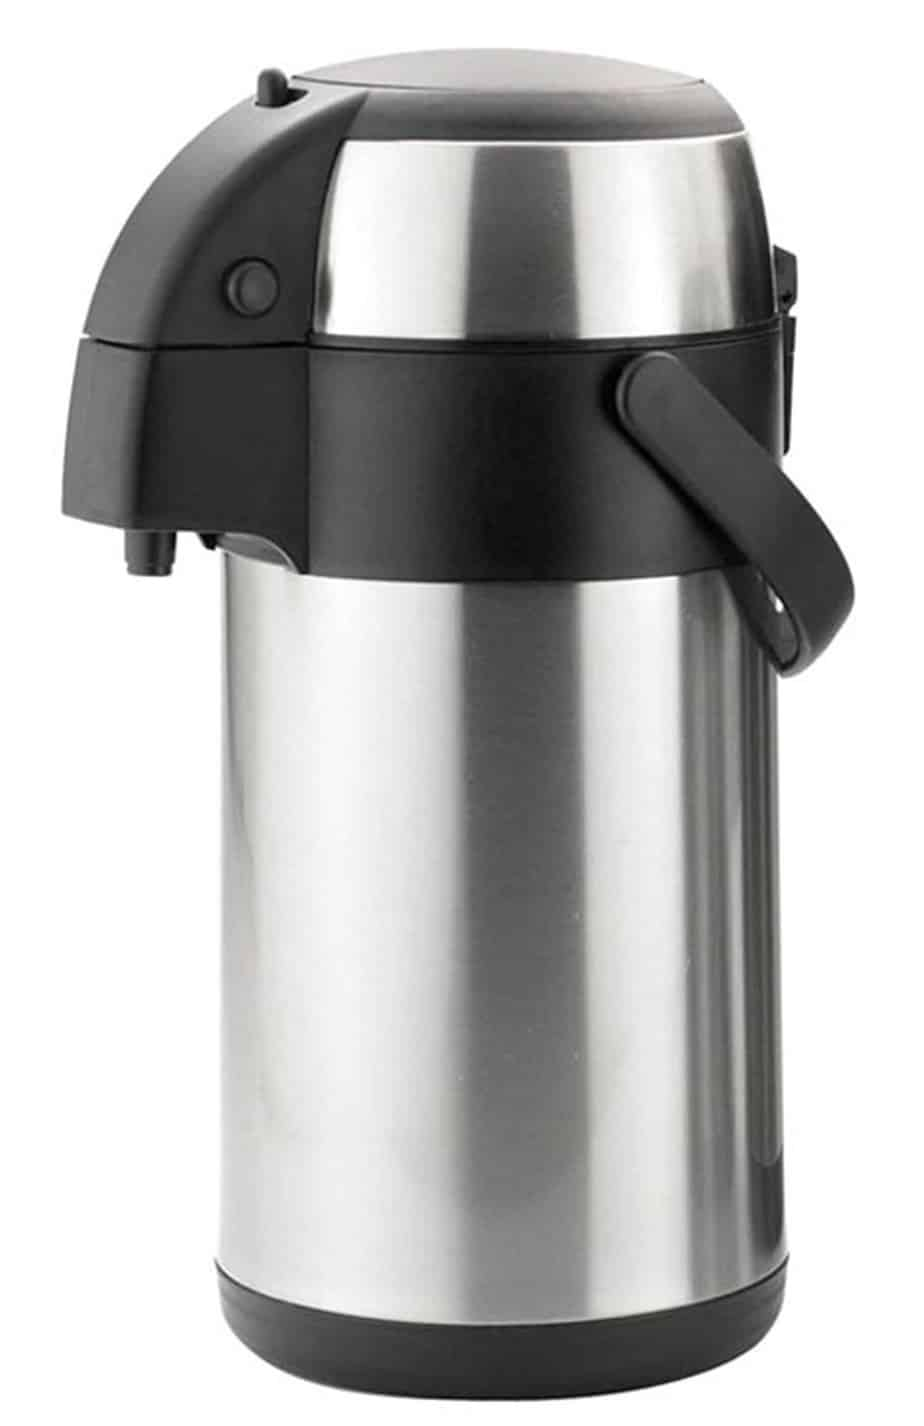 Zodiac 3.0 Litre Stainless Steel Air Pot